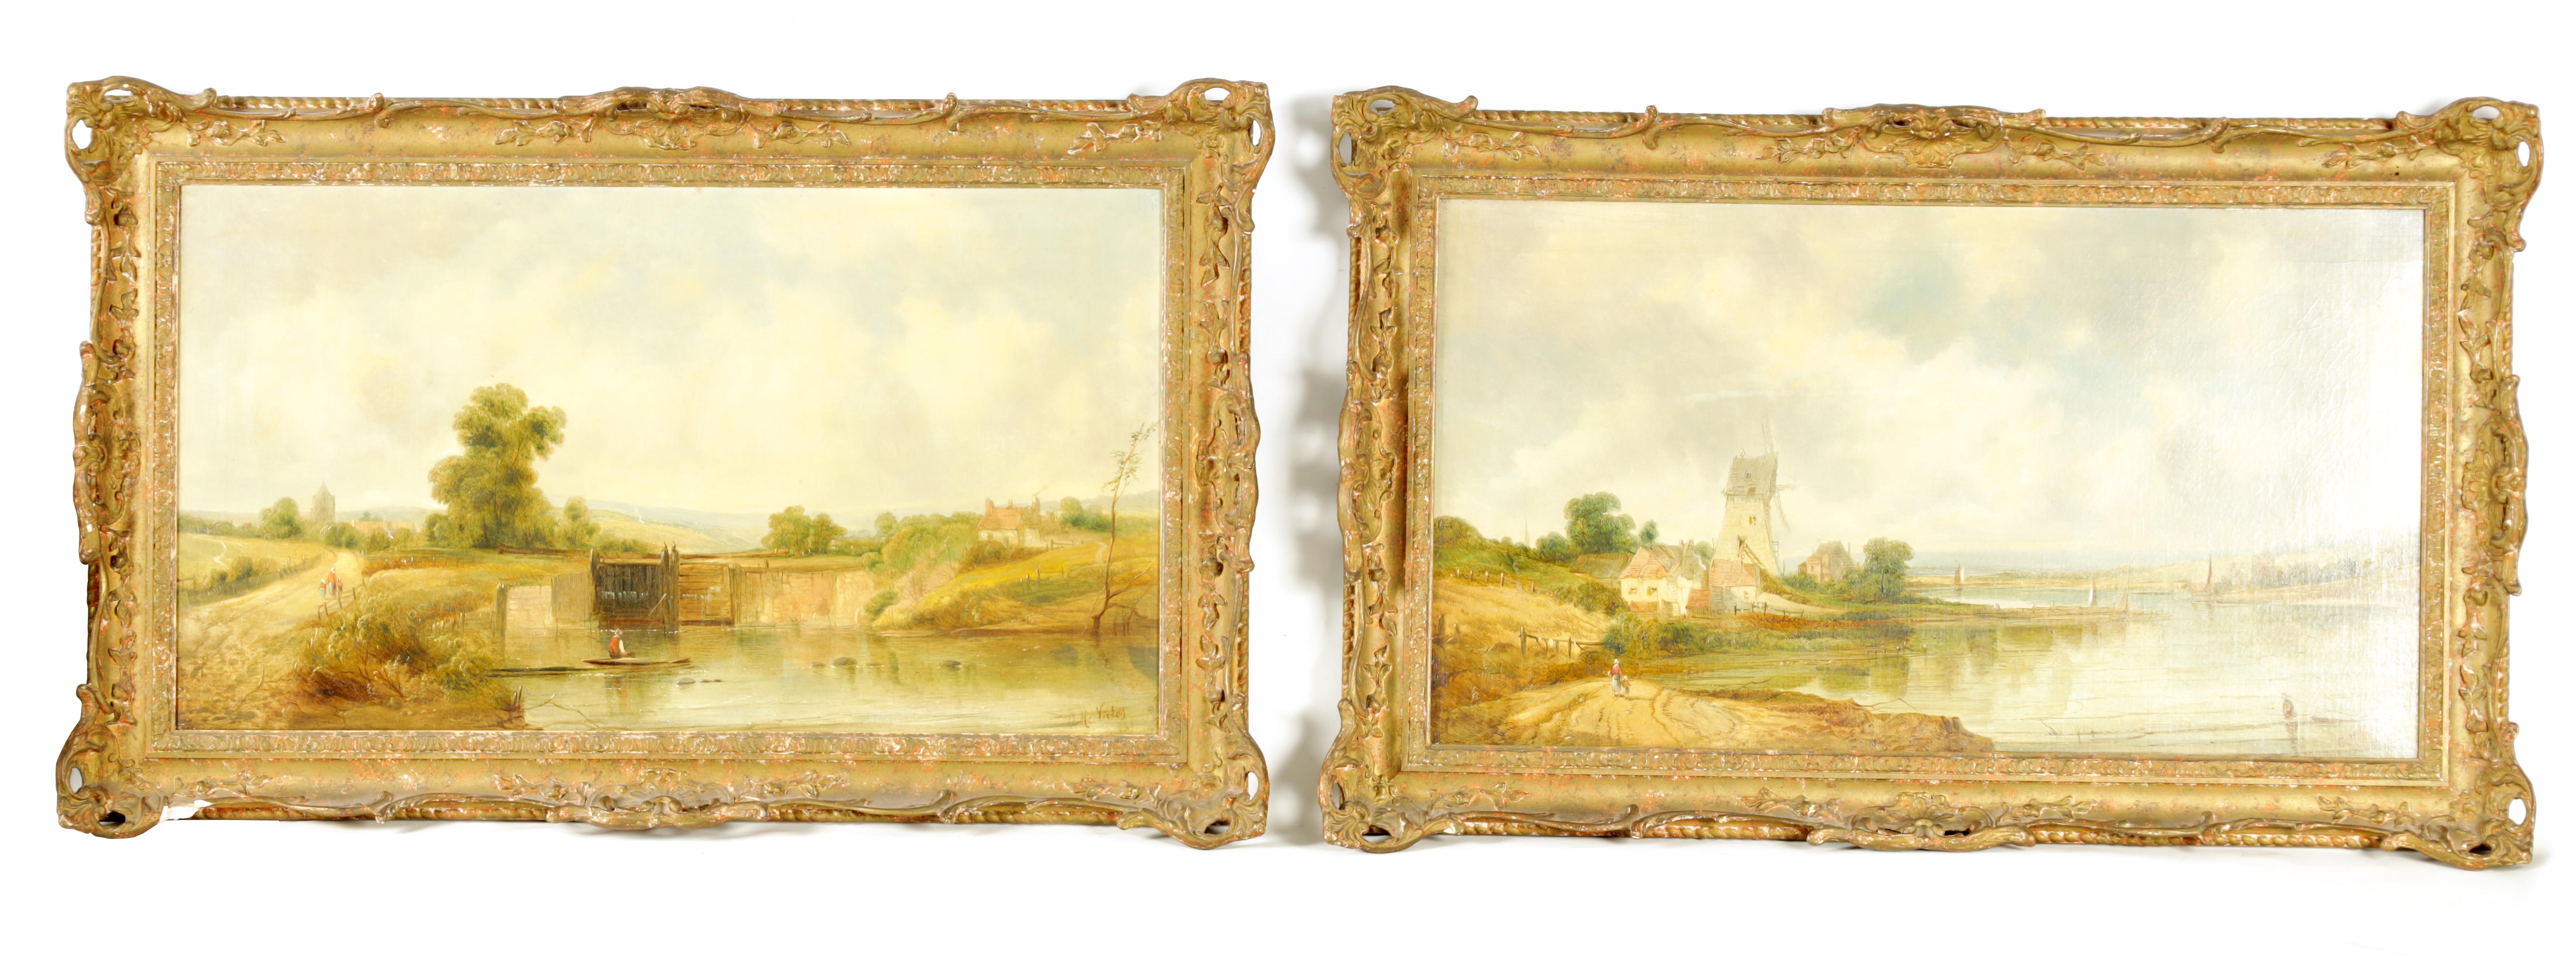 ALFRED H. VICKERS A PAIR OF MID 19TH CENTURY OILS ON CANVAS depicting river landscapes - signed